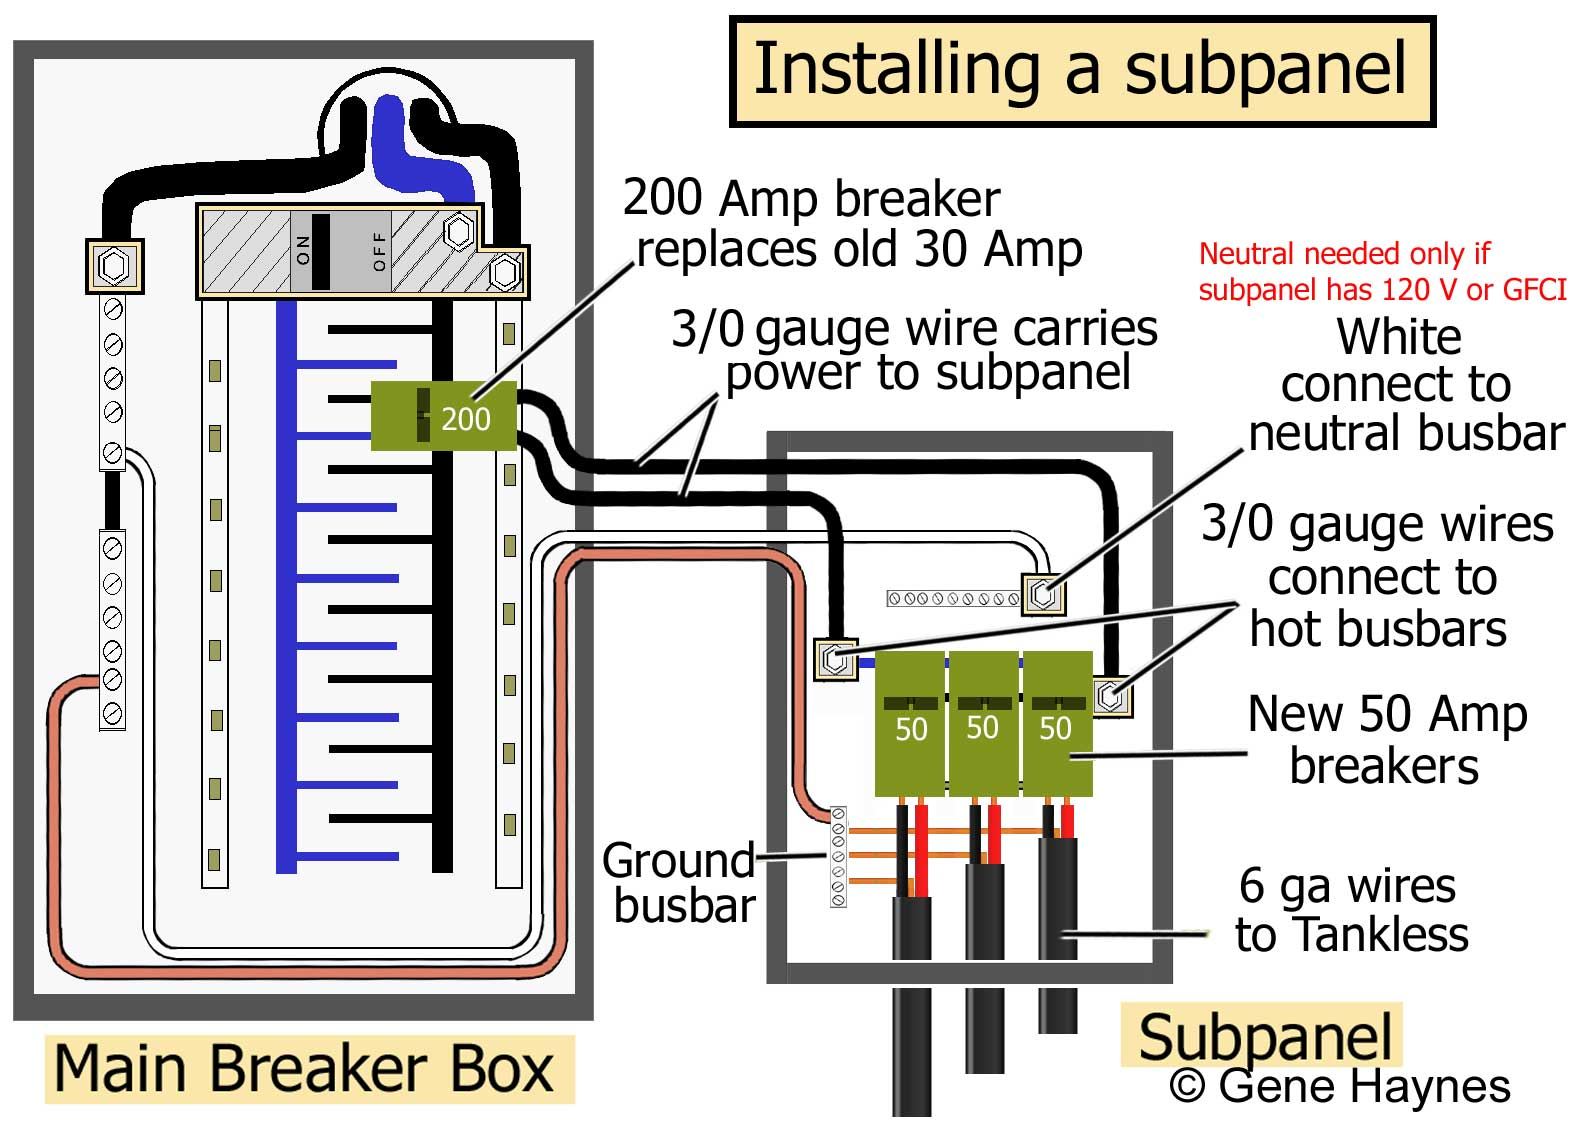 Main subpanel Tankless 600 how to install a subpanel how to install main lug wiring diagram for 60 amp subpanel at crackthecode.co